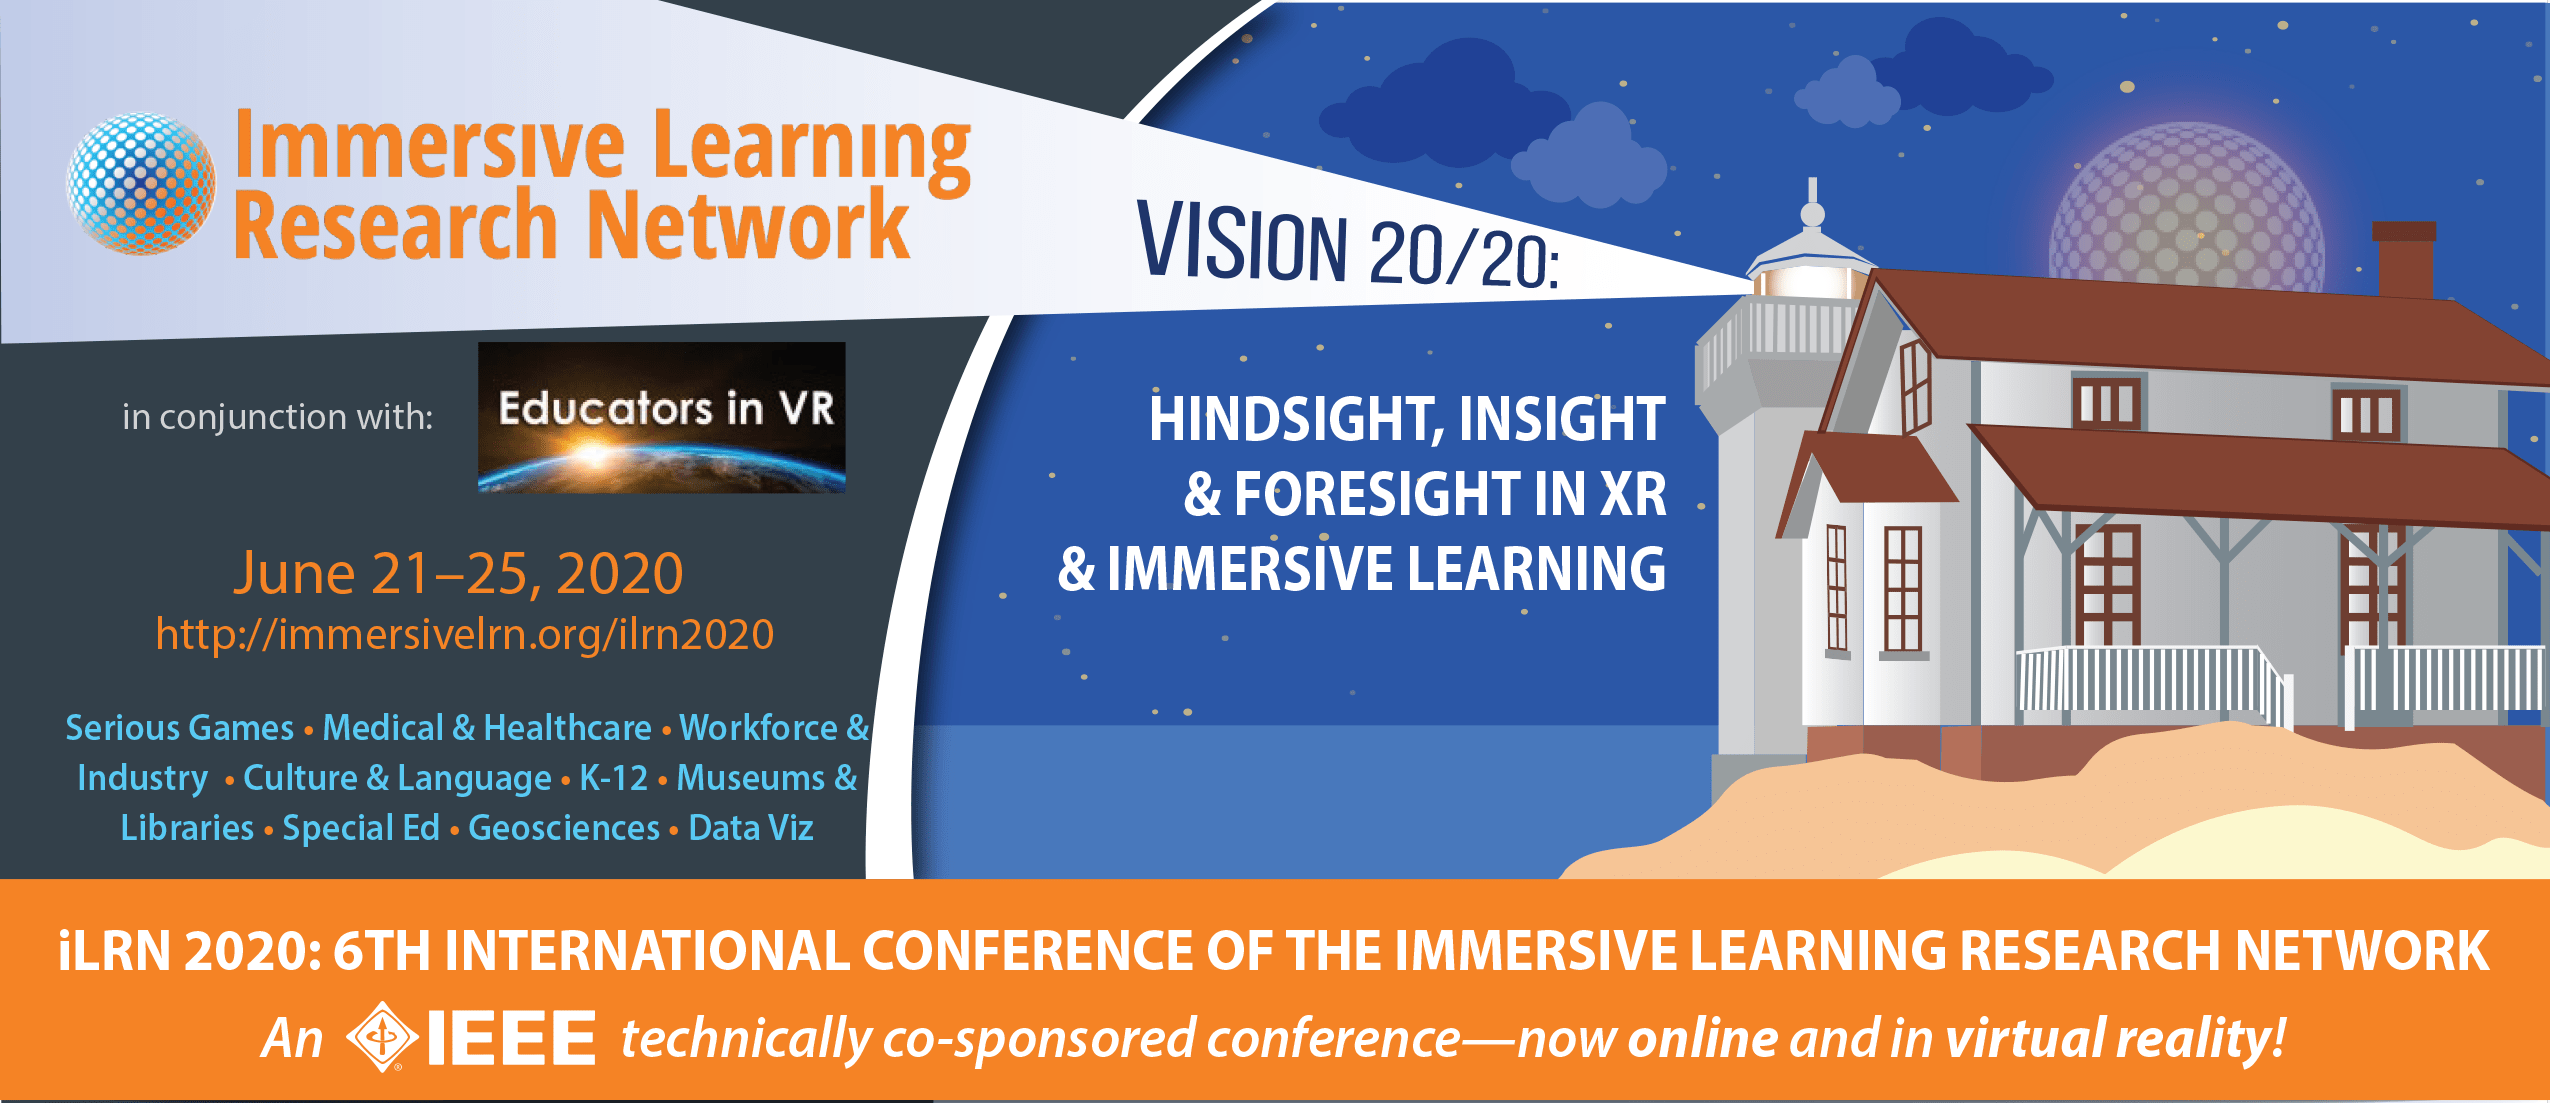 iLRN 2020: 6th International Conference of the Immersive Learning Research Network